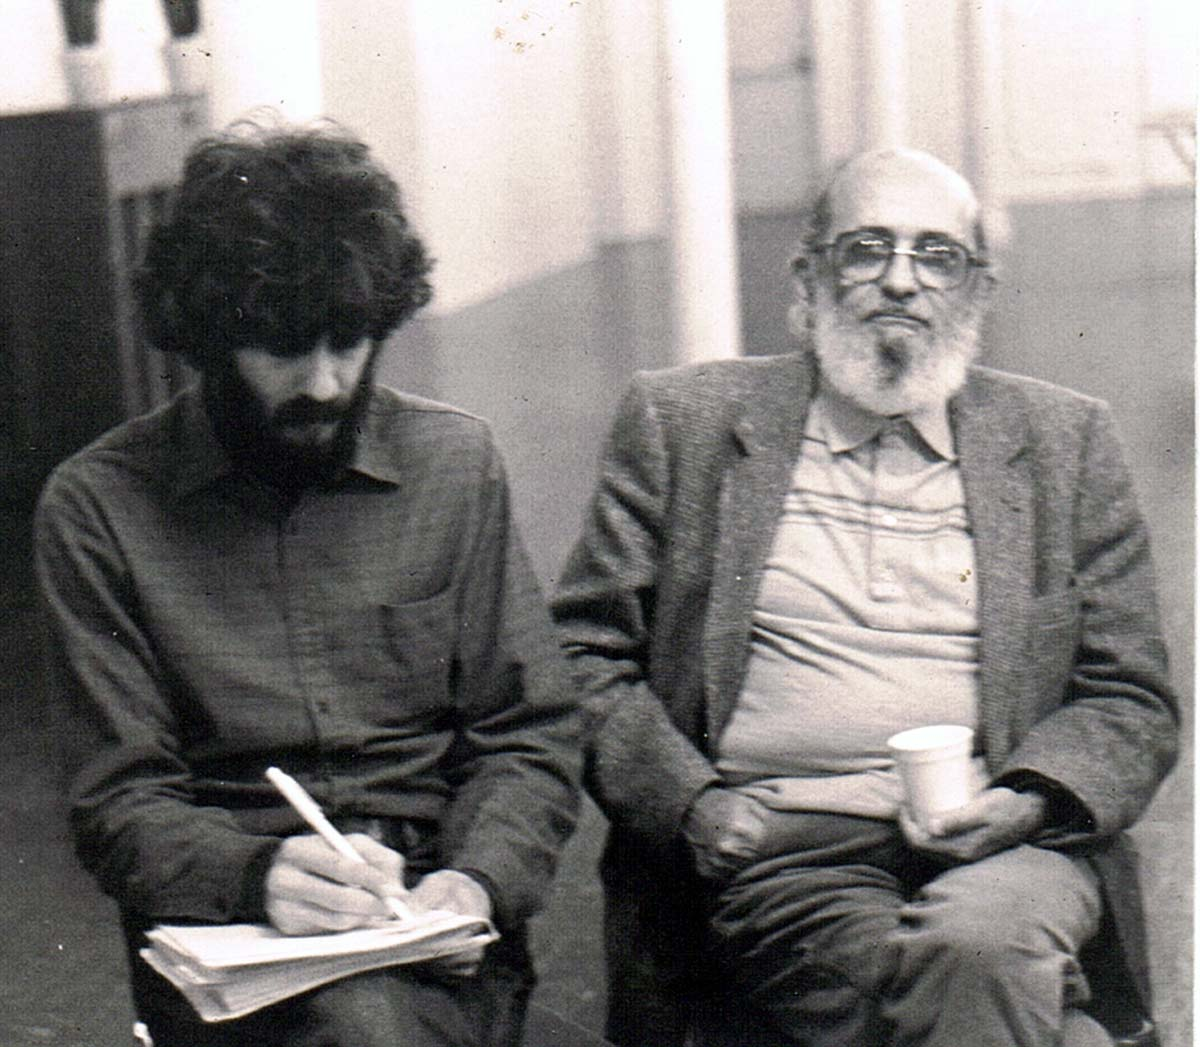 Paulo Freire With unidentified participant at he Tenderloin Reflection Center circa 1983-85 at Bible Study Group at St. Boniface